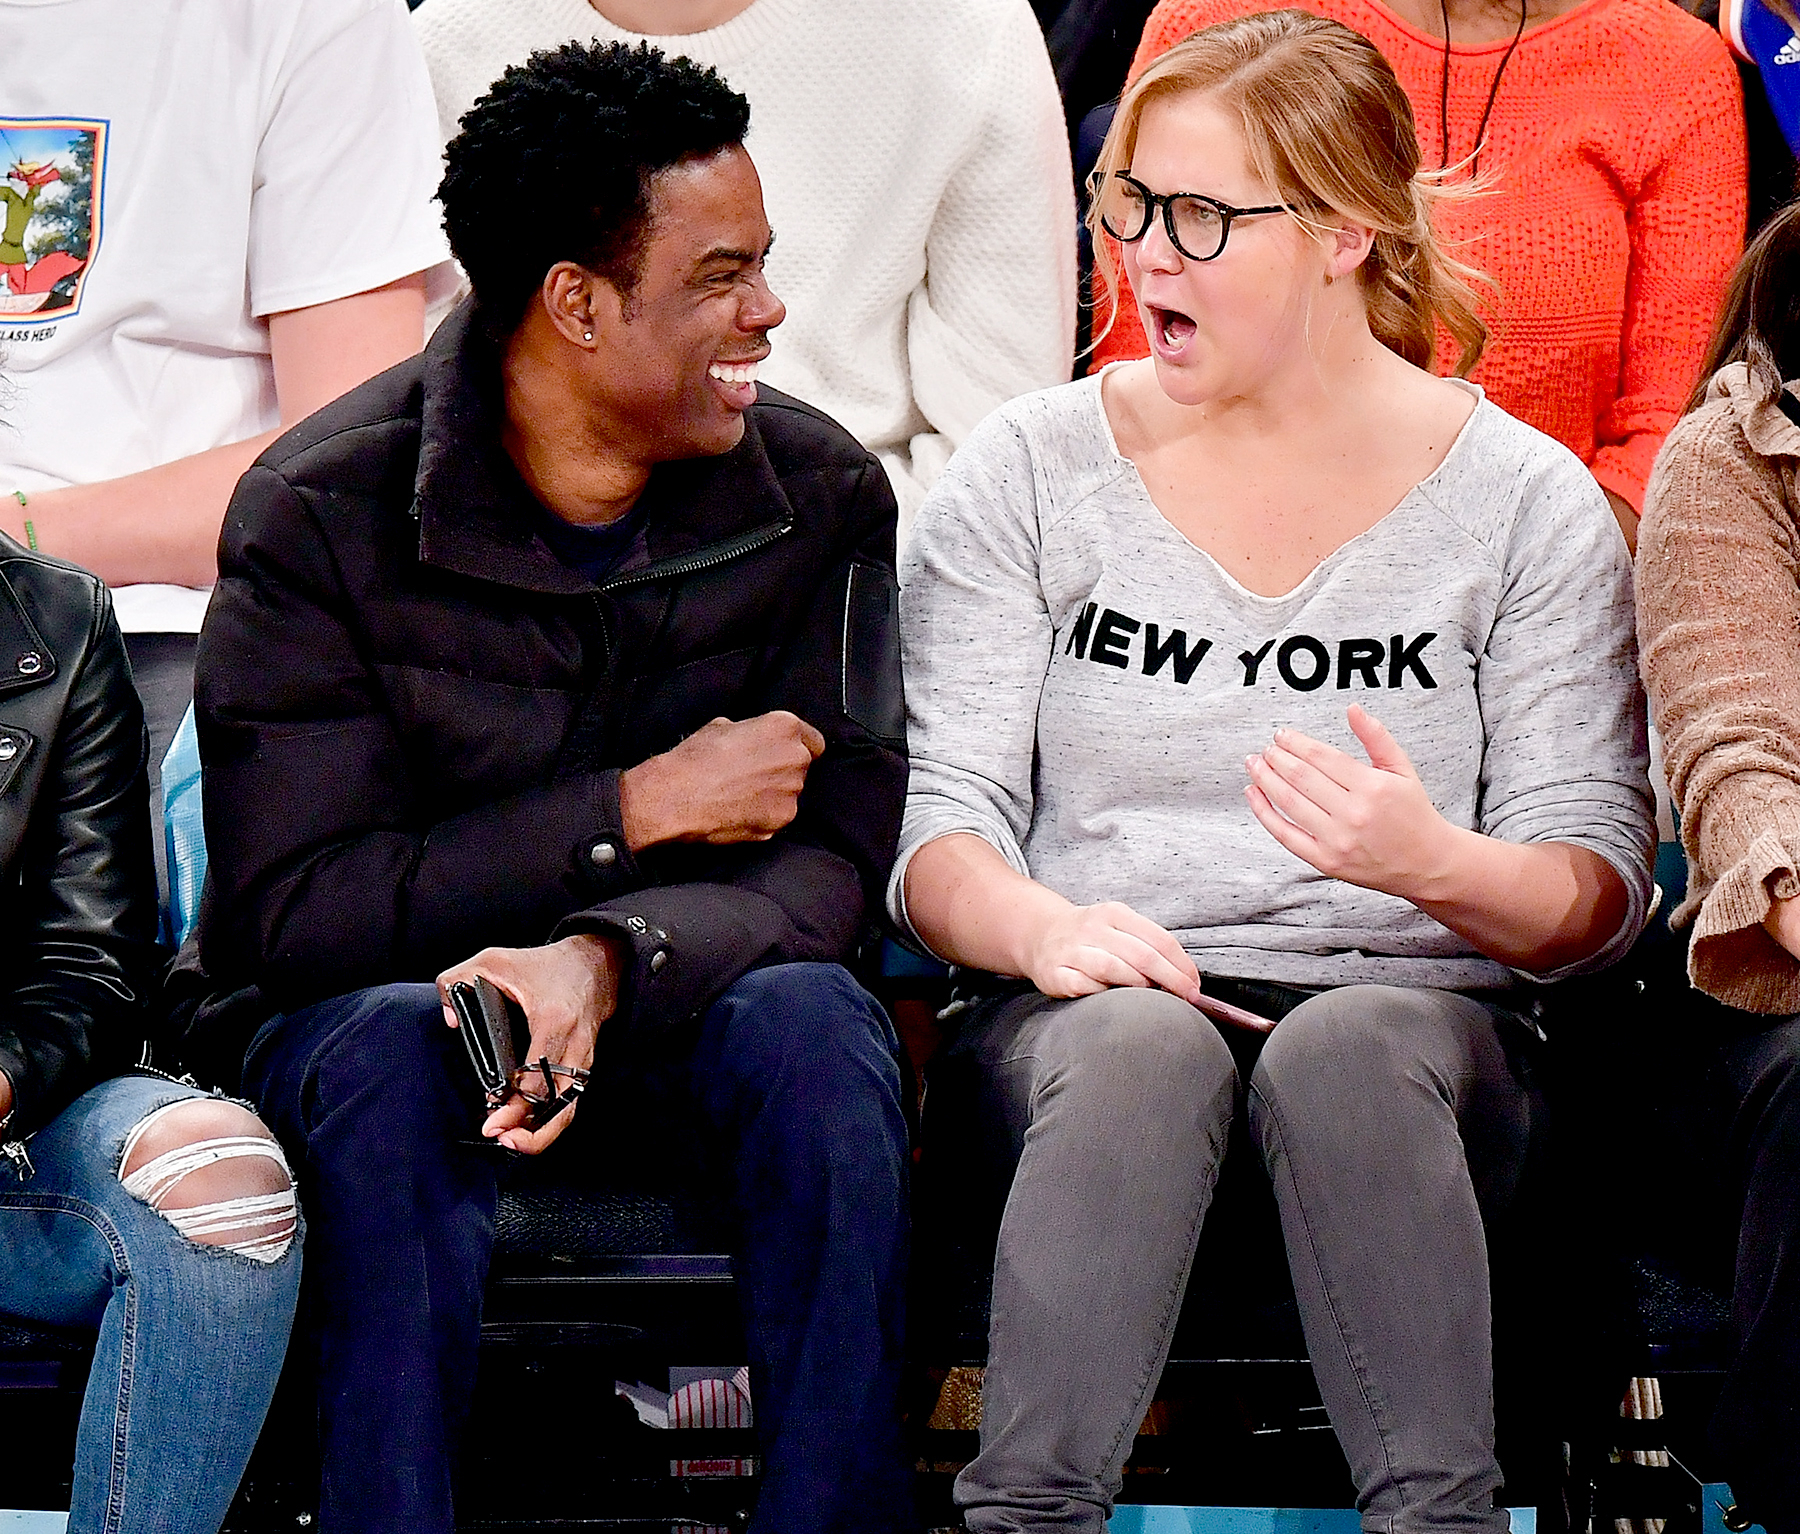 Chris Rock and Amy Schumer attend Indiana Pacers Vs. New York Knicks game at Madison Square Garden on December 20, 2016 in New York City.